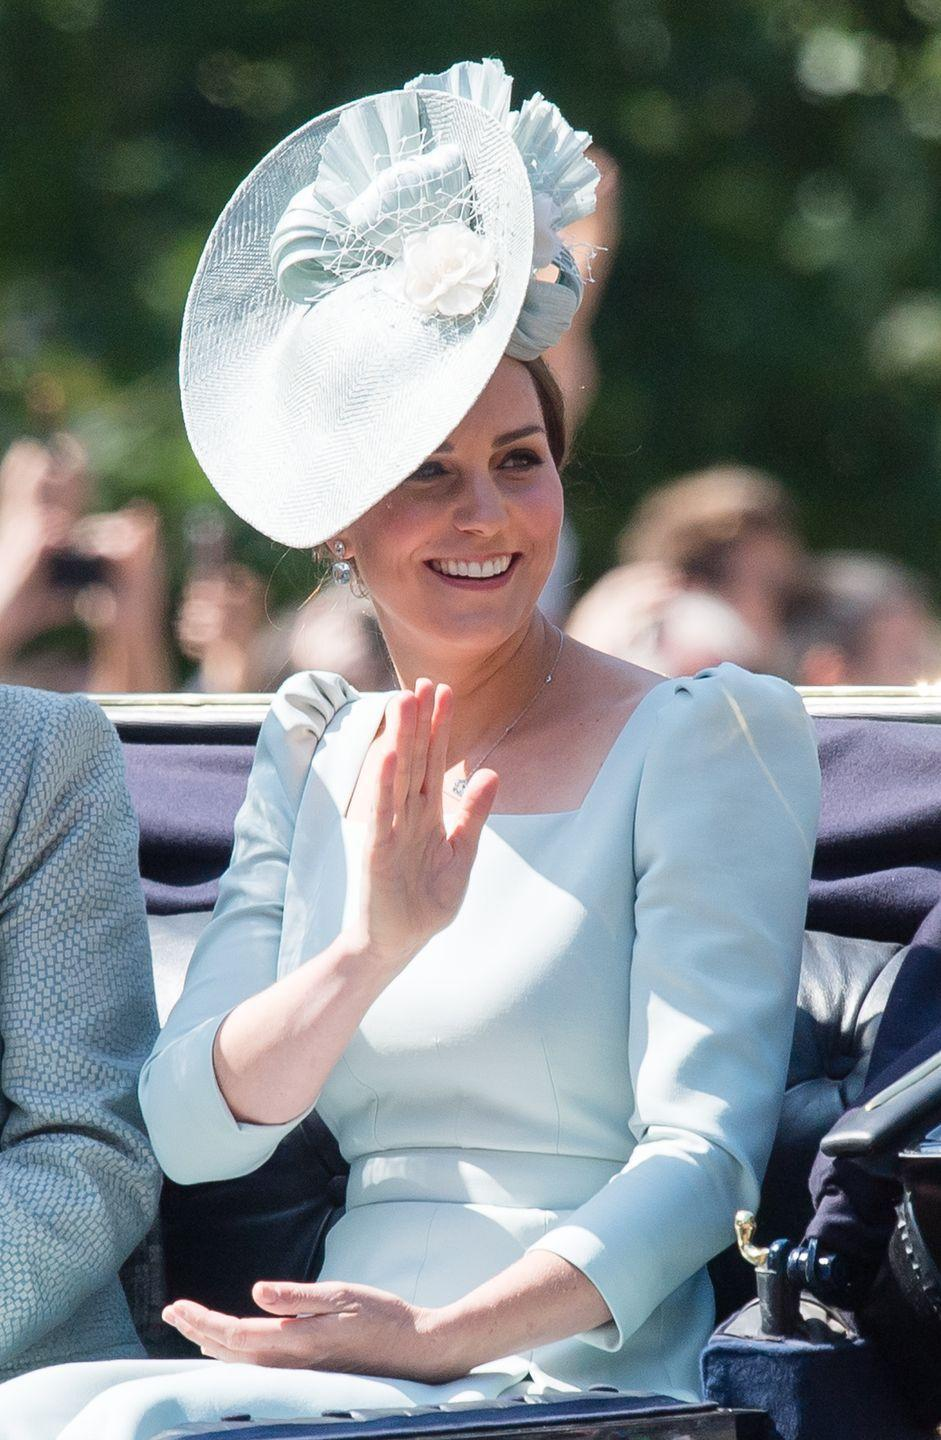 """<p>The Duchess looked lovely <a href=""""https://www.townandcountrymag.com/society/tradition/a21240655/kate-middleton-dress-trooping-the-colour-2018/"""" rel=""""nofollow noopener"""" target=""""_blank"""" data-ylk=""""slk:in a pale blue dress by Alexander McQueen"""" class=""""link rapid-noclick-resp"""">in a pale blue dress by Alexander McQueen</a> while attending the Queen's Trooping the Colour parade in London. She also wore a hat by Juliette Botterill for the festive occasion. </p>"""